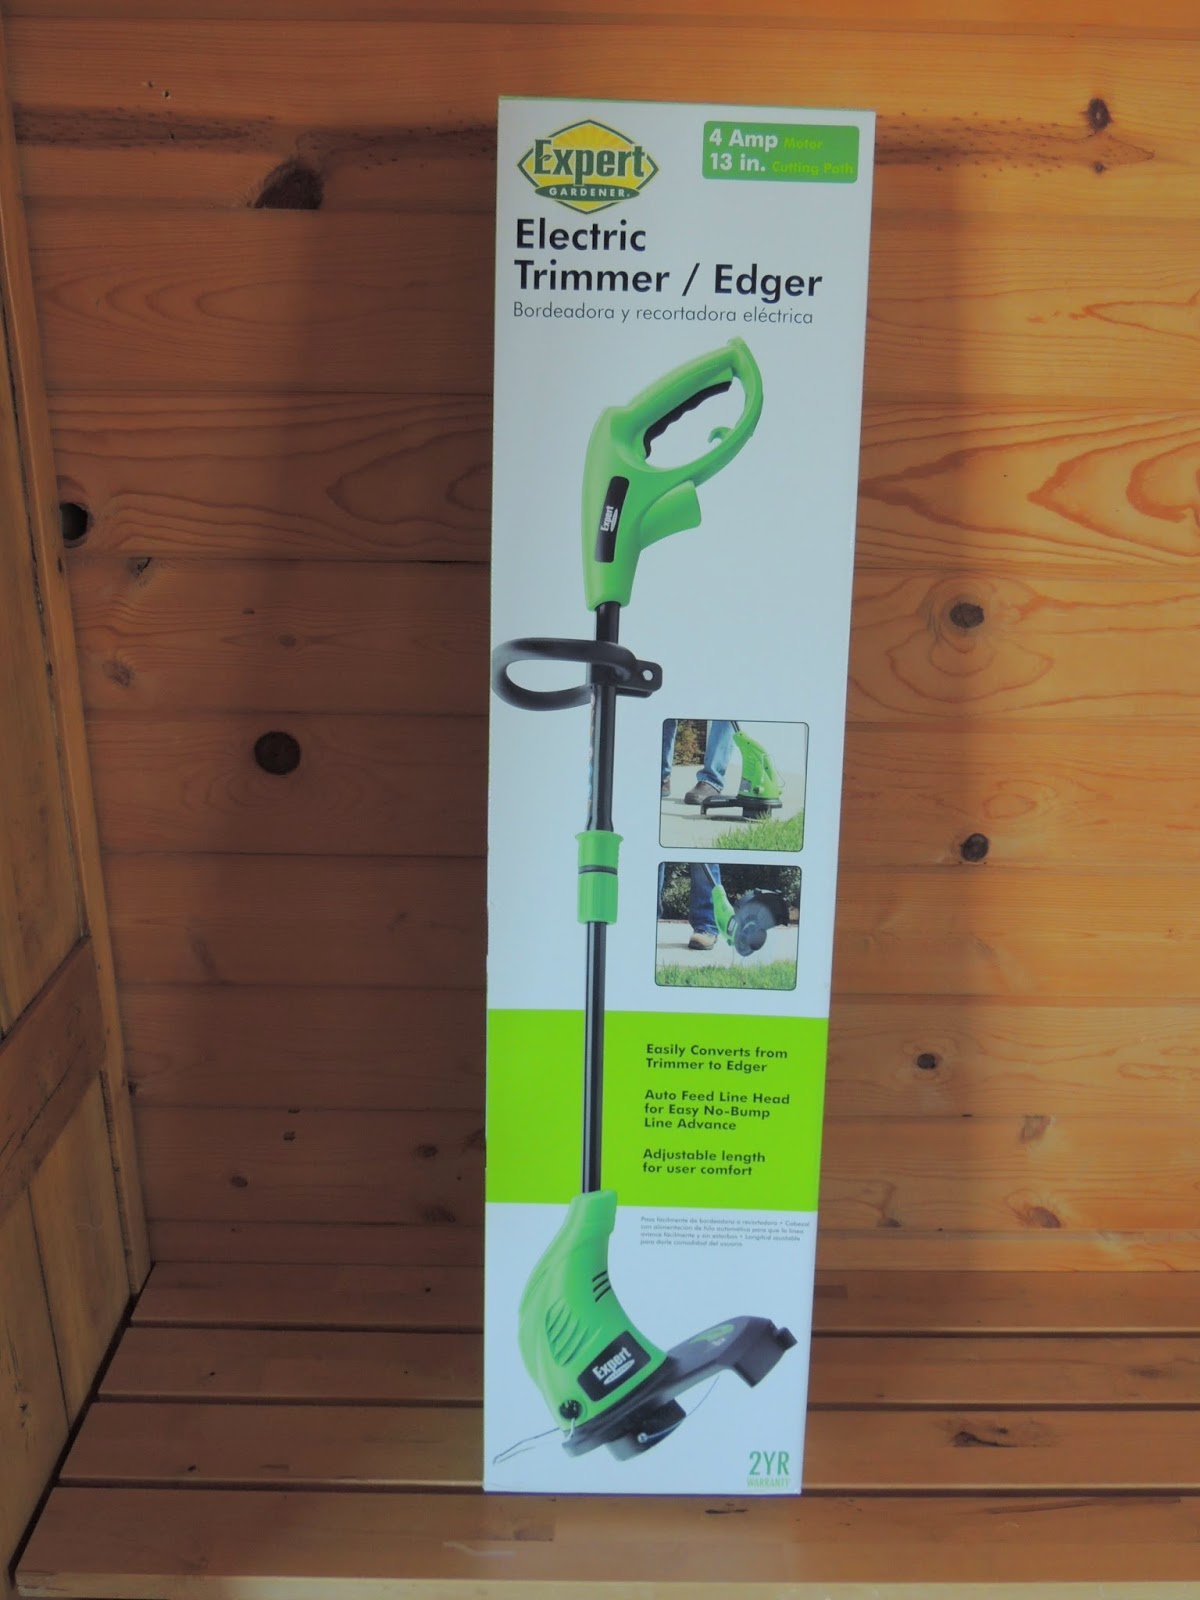 My Homesteading Project Expert Gardener Electric Trimmer Edger